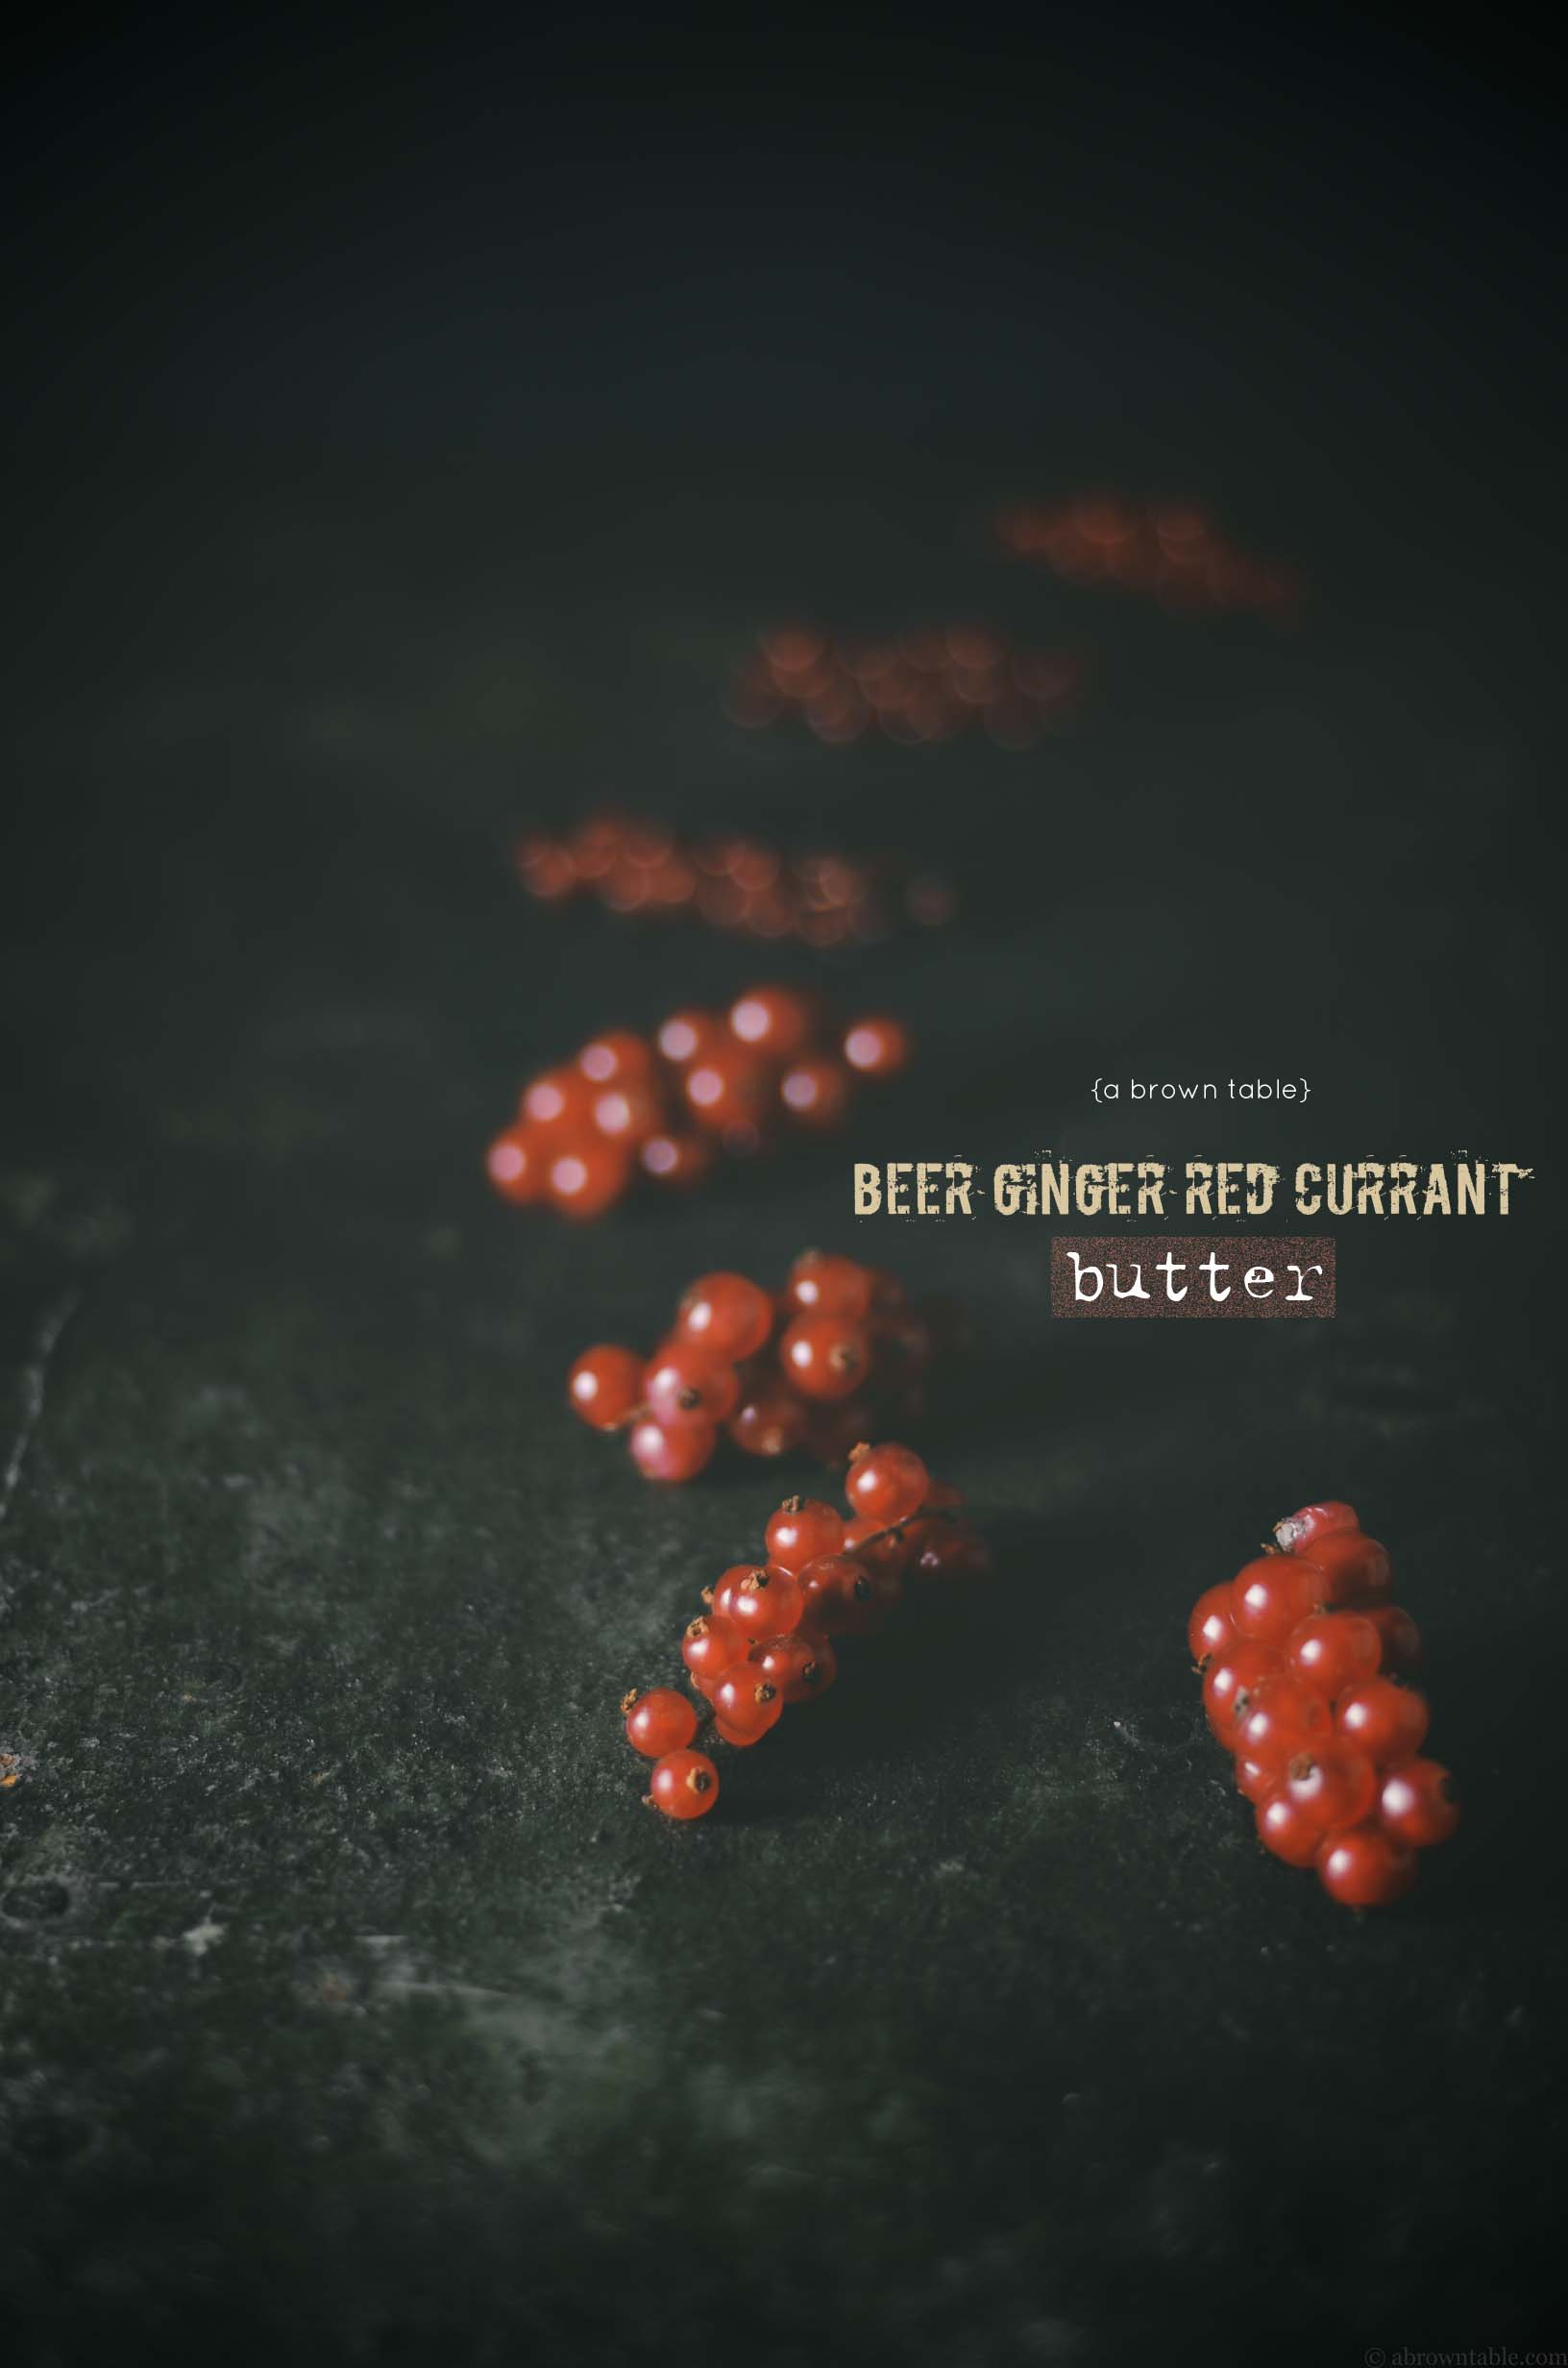 red currants for beer ginger butter